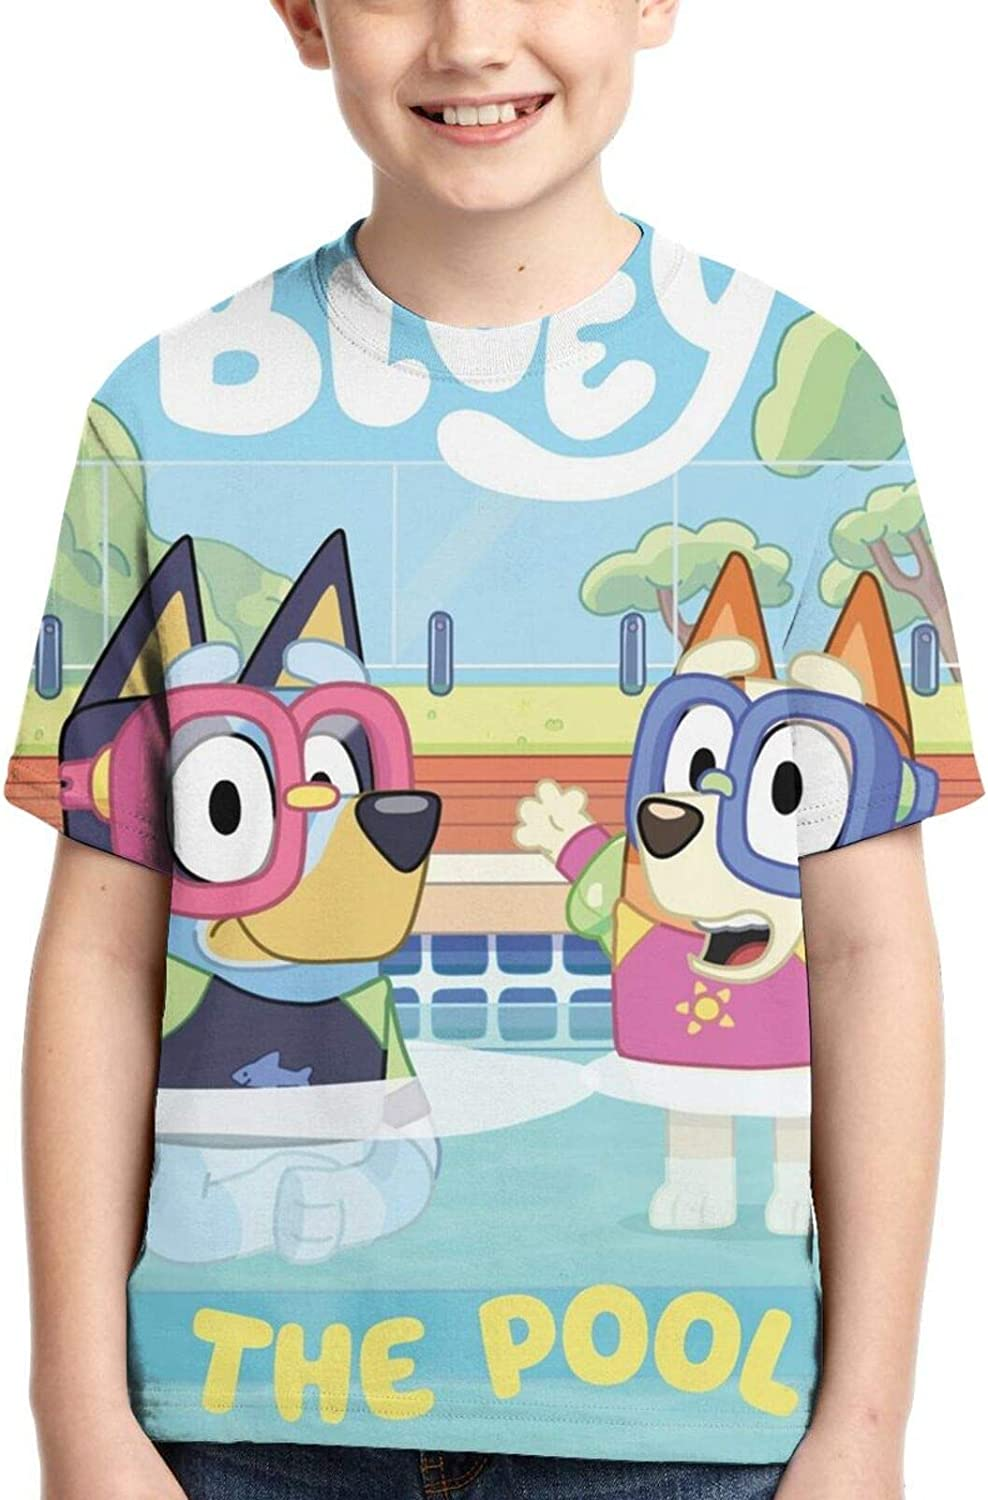 Blu-Ey Teenage Children Short-Sleeved Top Printed T-Shirt Boys and Girls Round Neck Casual.